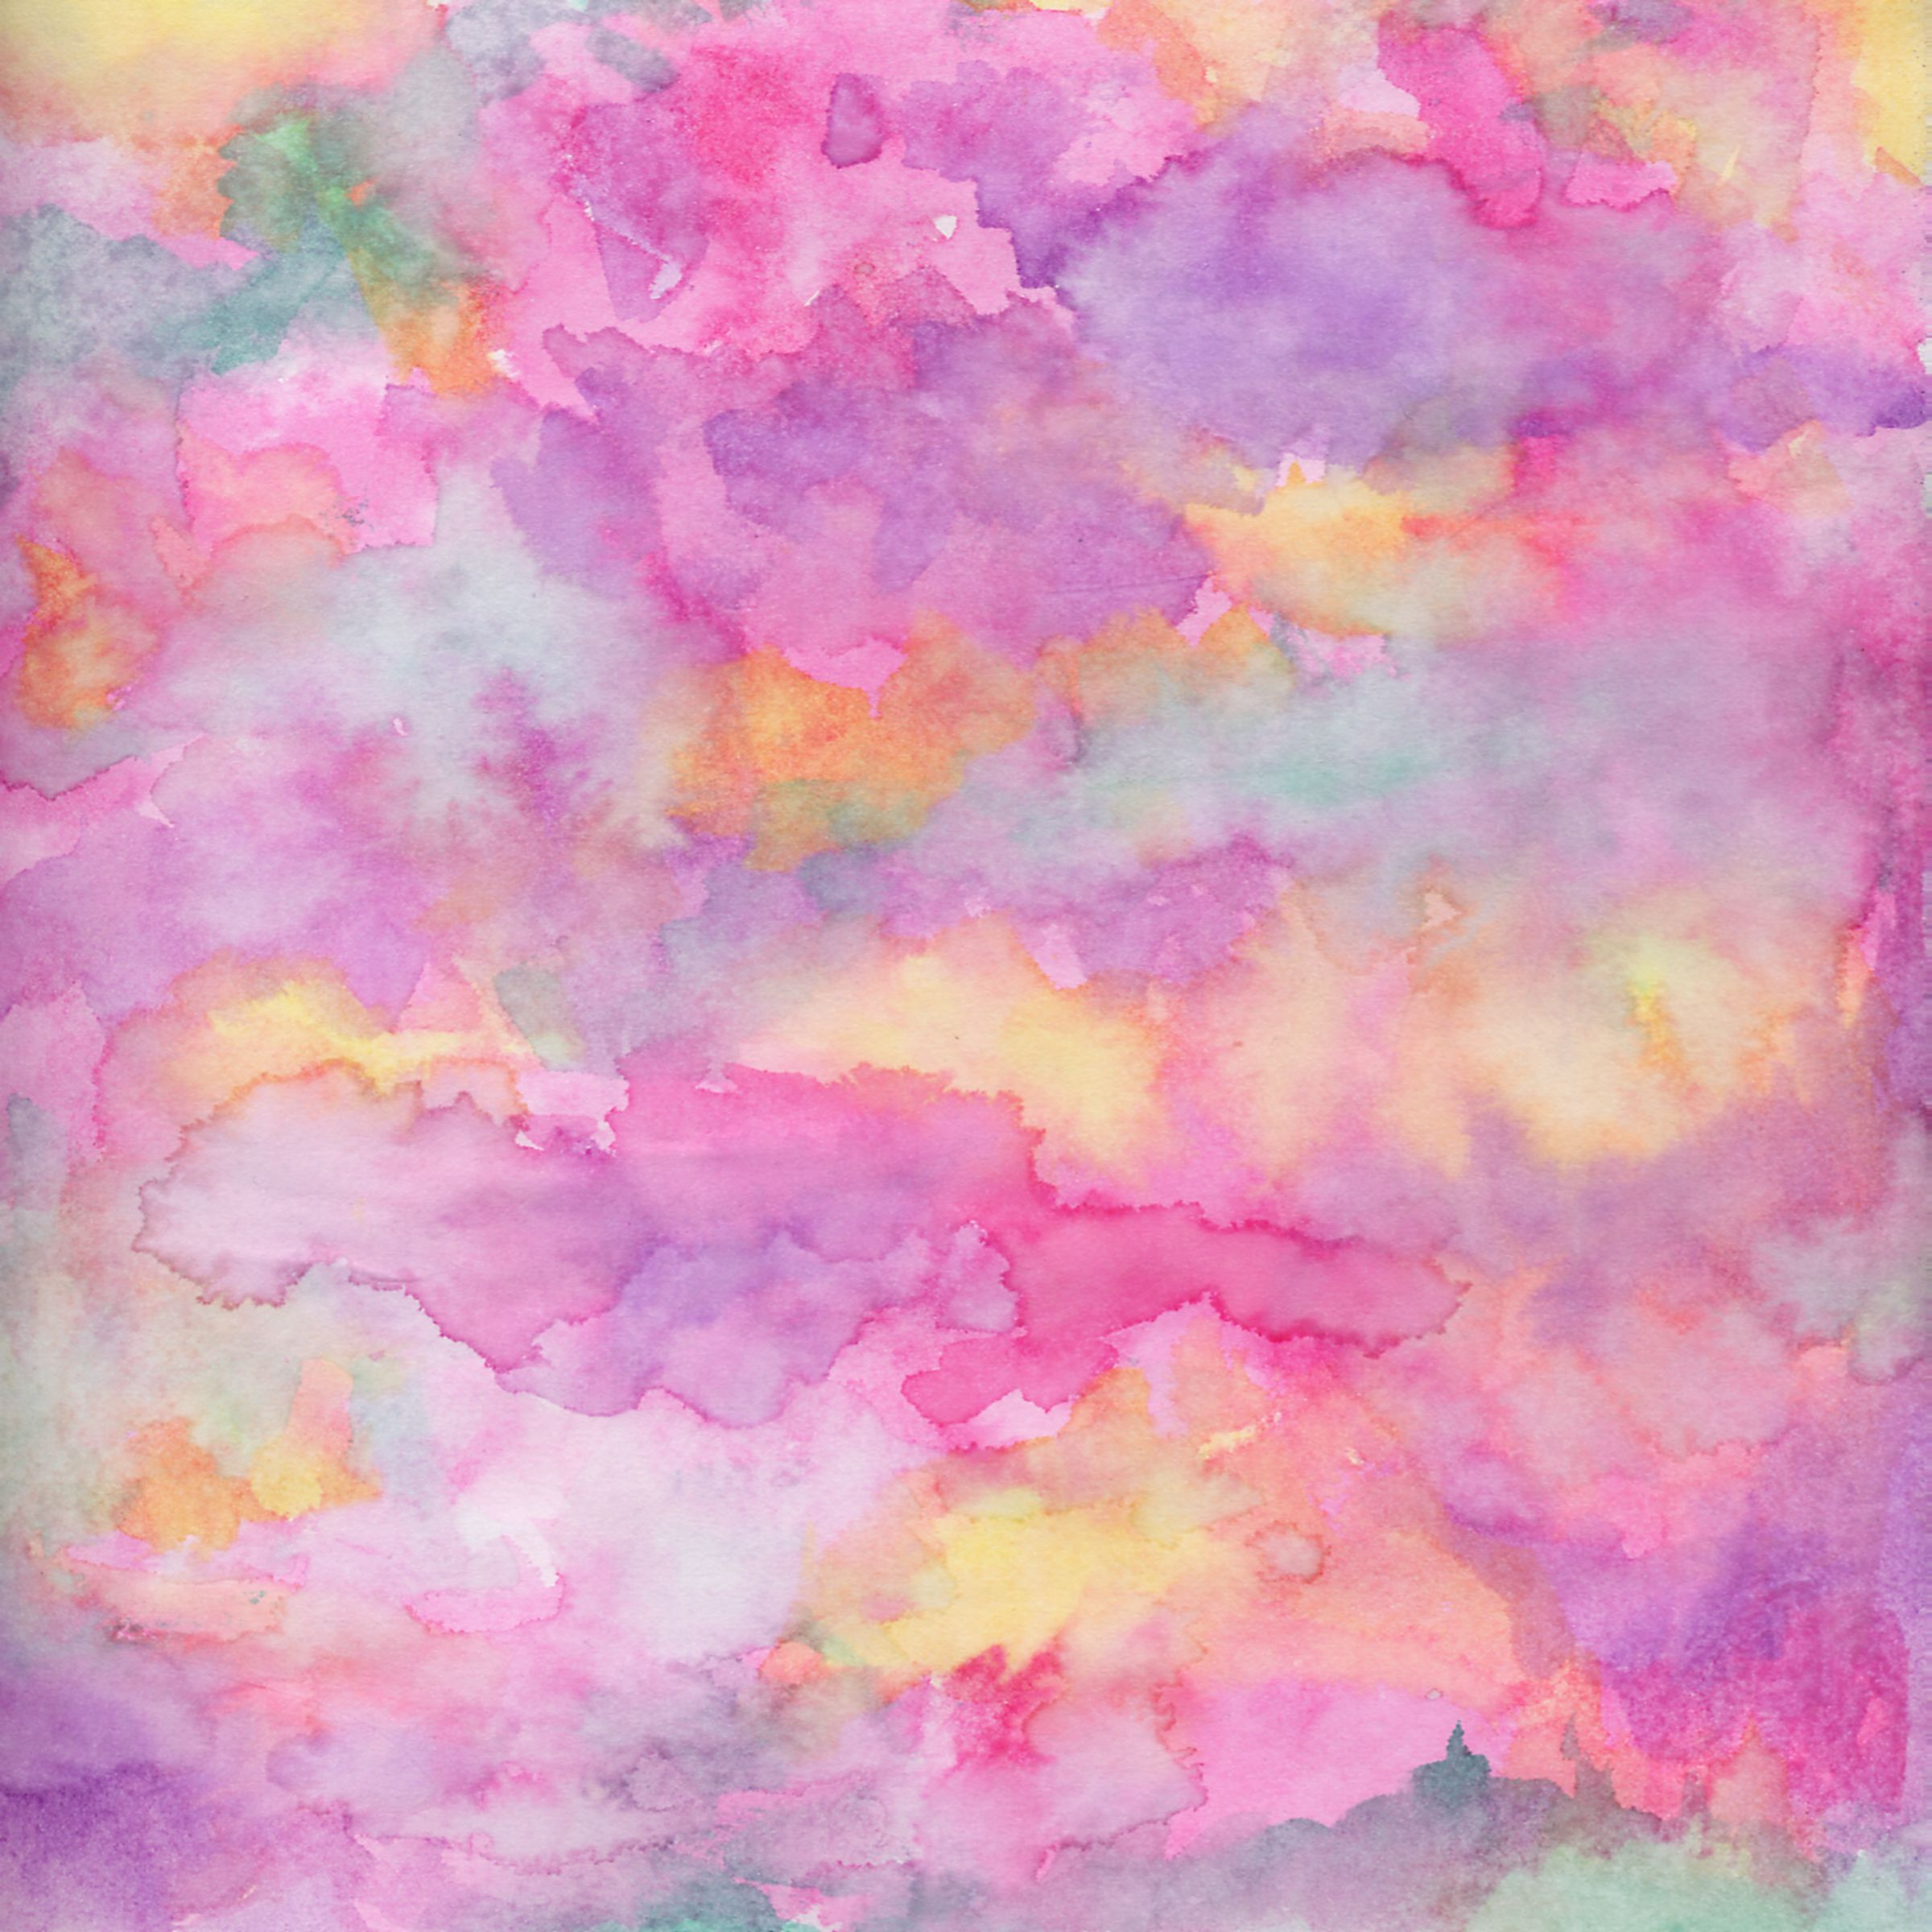 Watercolor texture background 12x12 inches for scrapbooking and 2400x2400